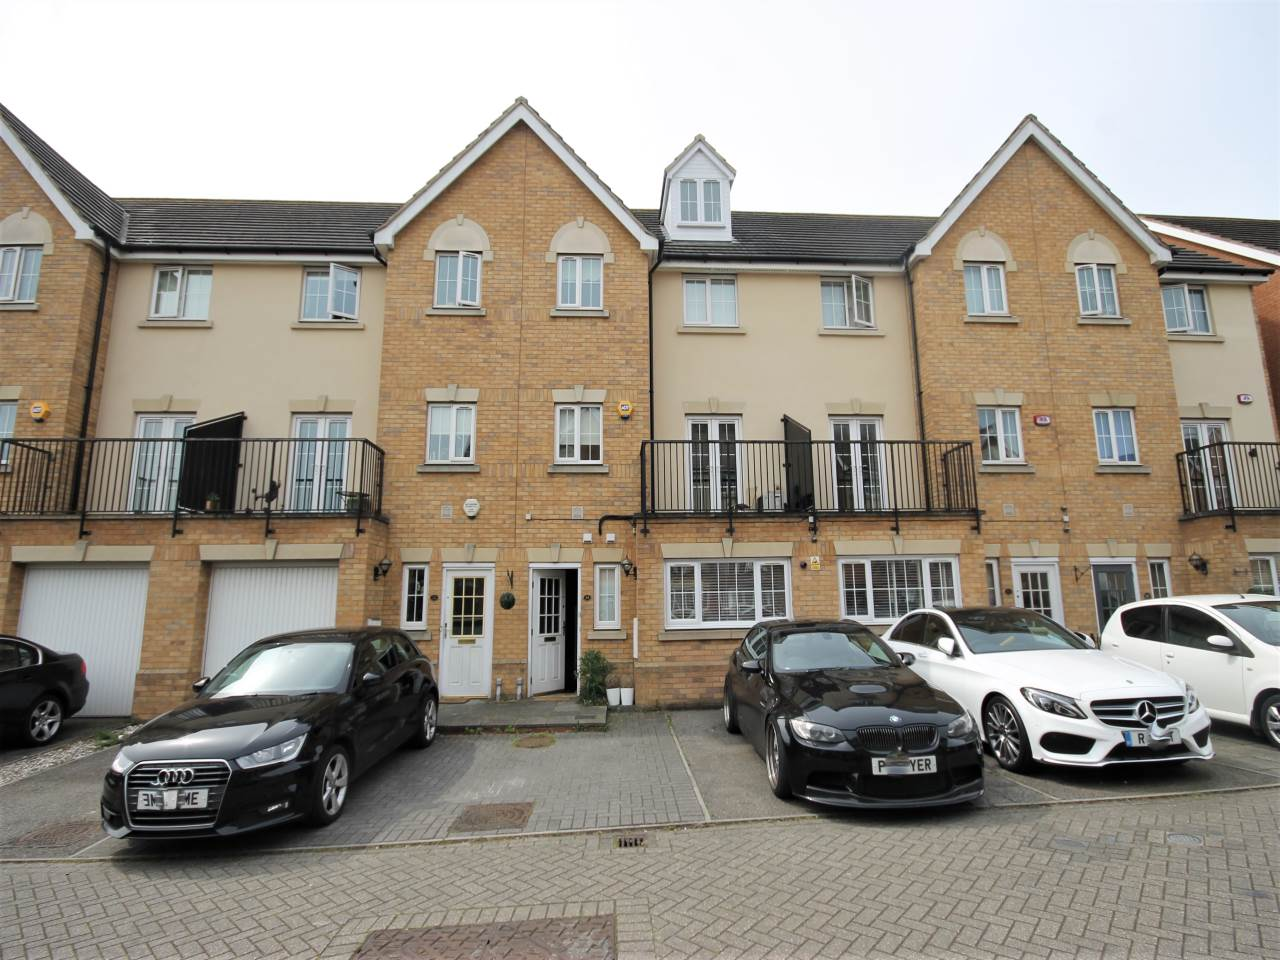 5 bed house to rent in Ilford - Property Image 1